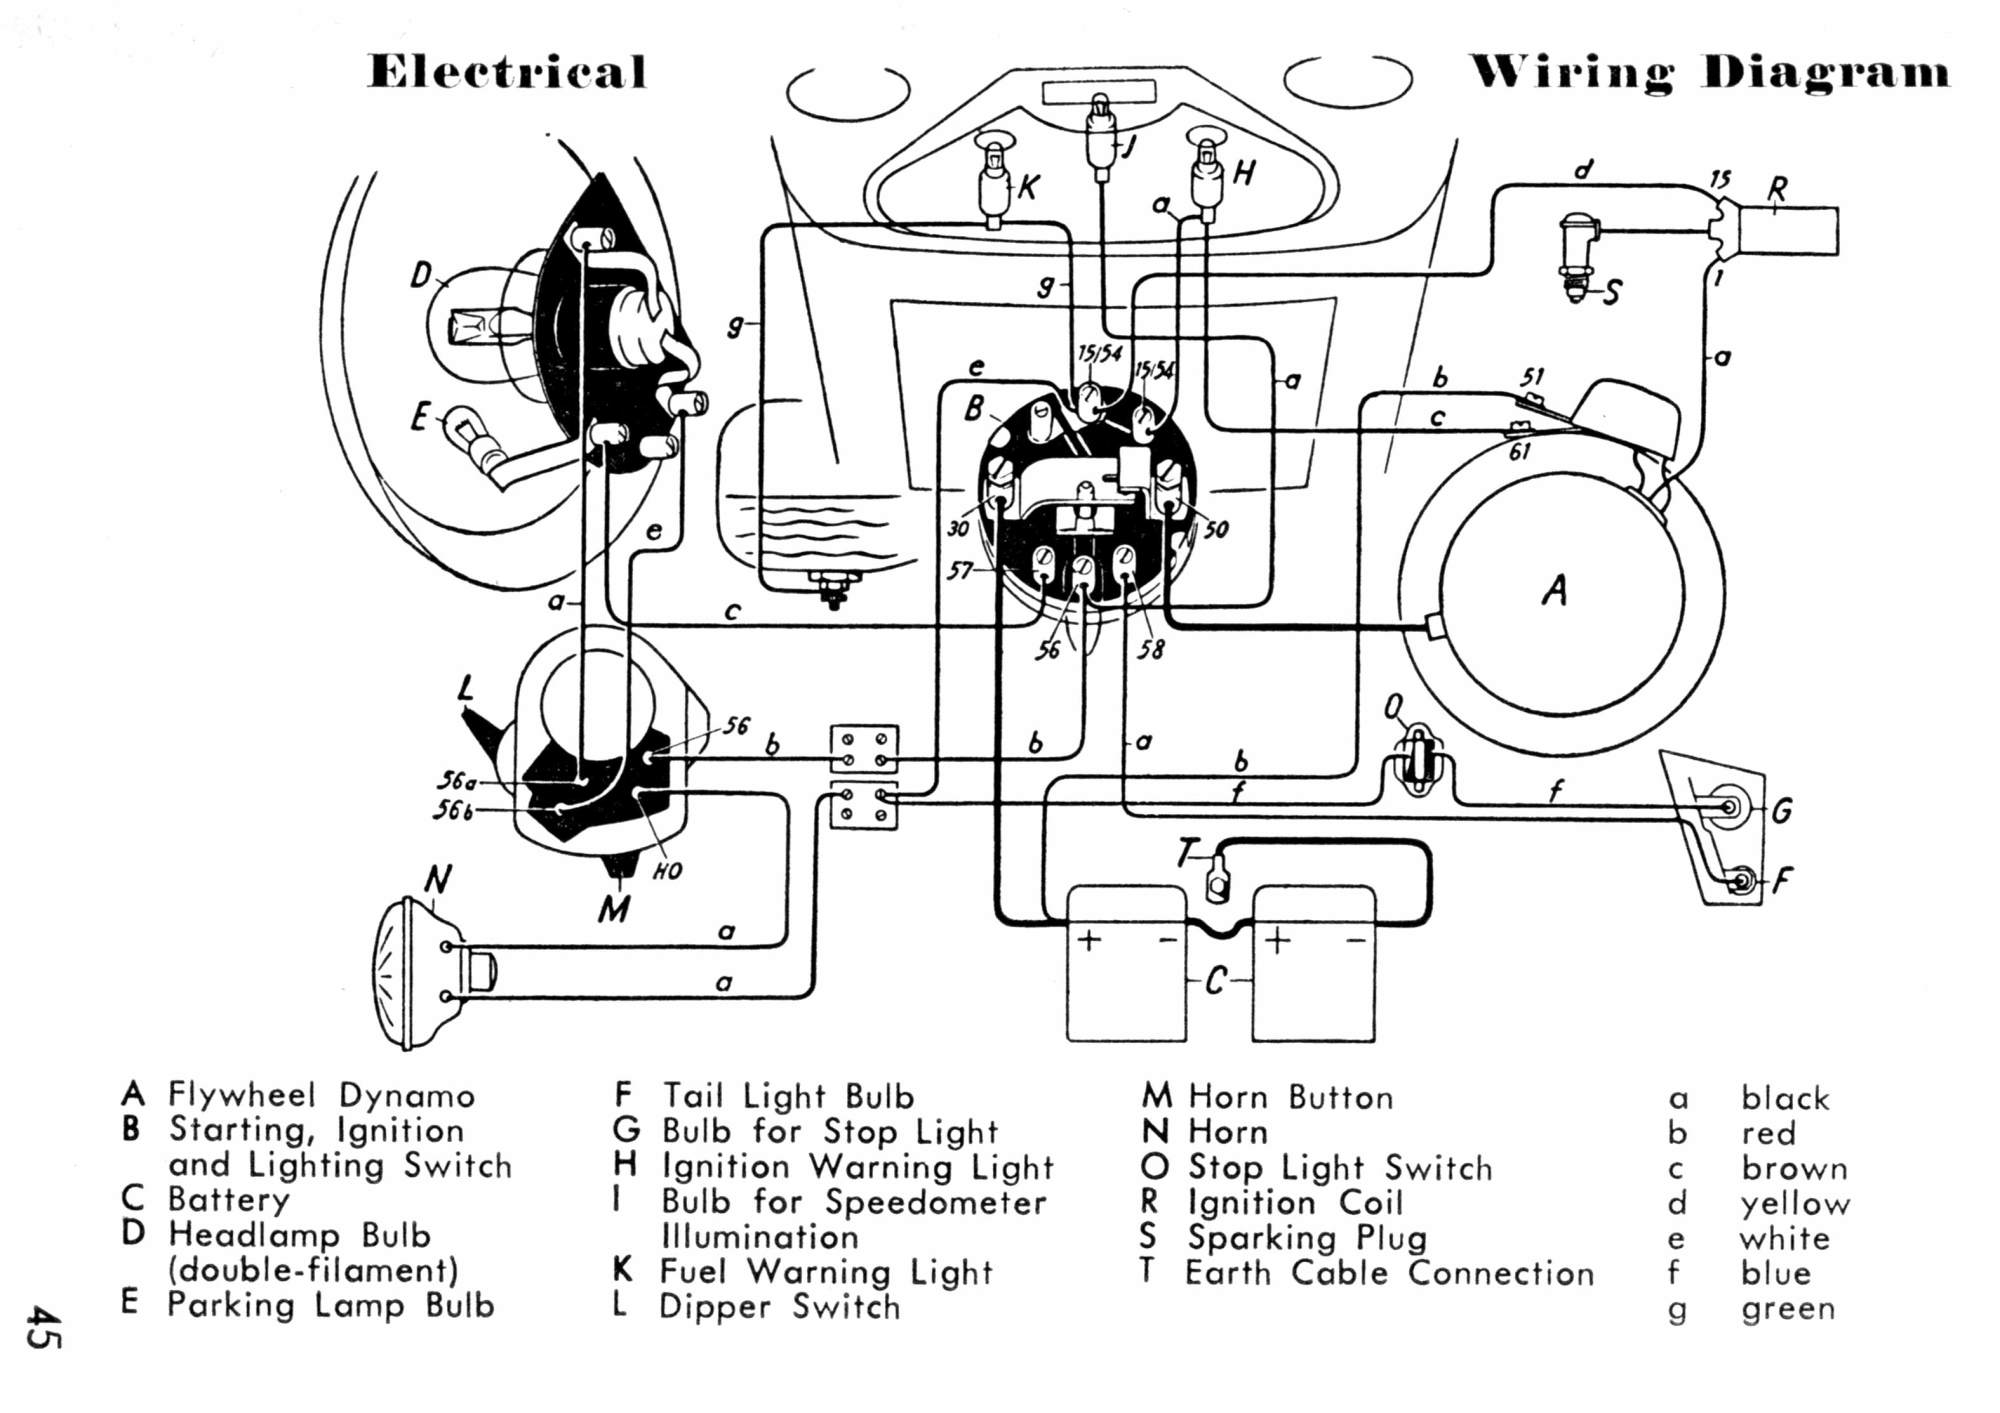 hight resolution of 56 prima manual pages 44 45 schematic circuit diagram dremel wiring diagram